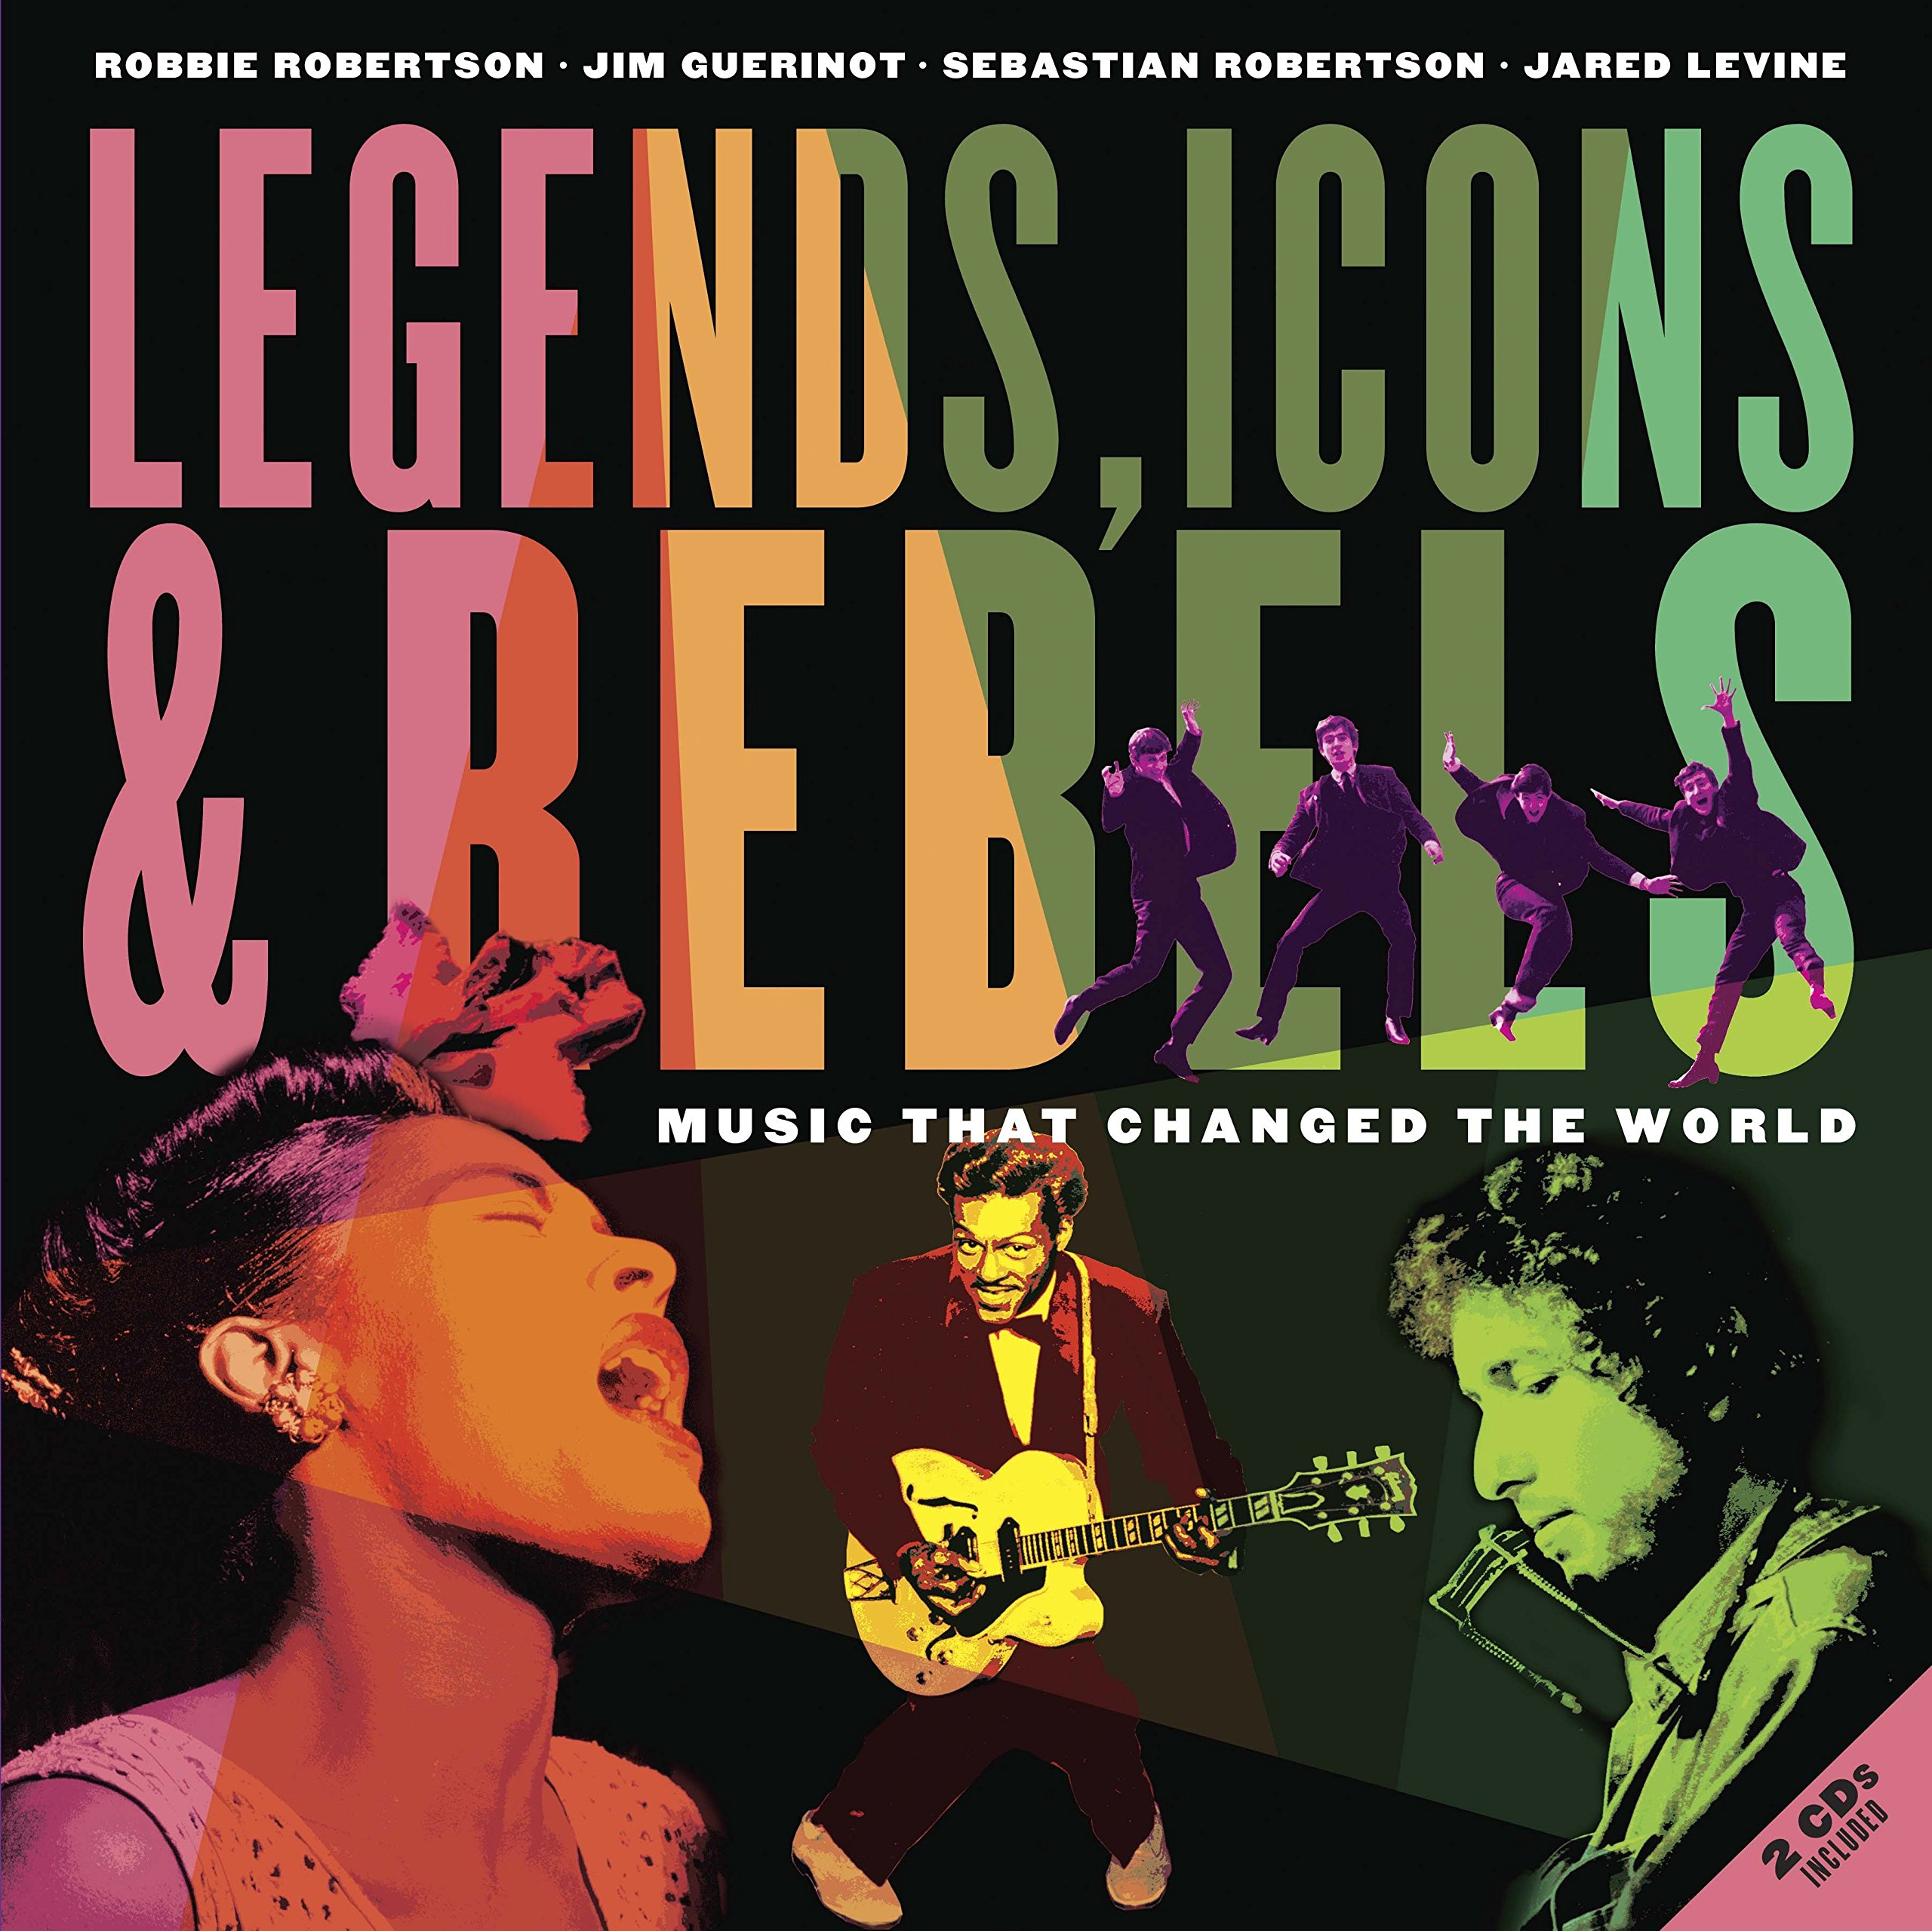 Legends Icons & Rebels: Music that Changed the World